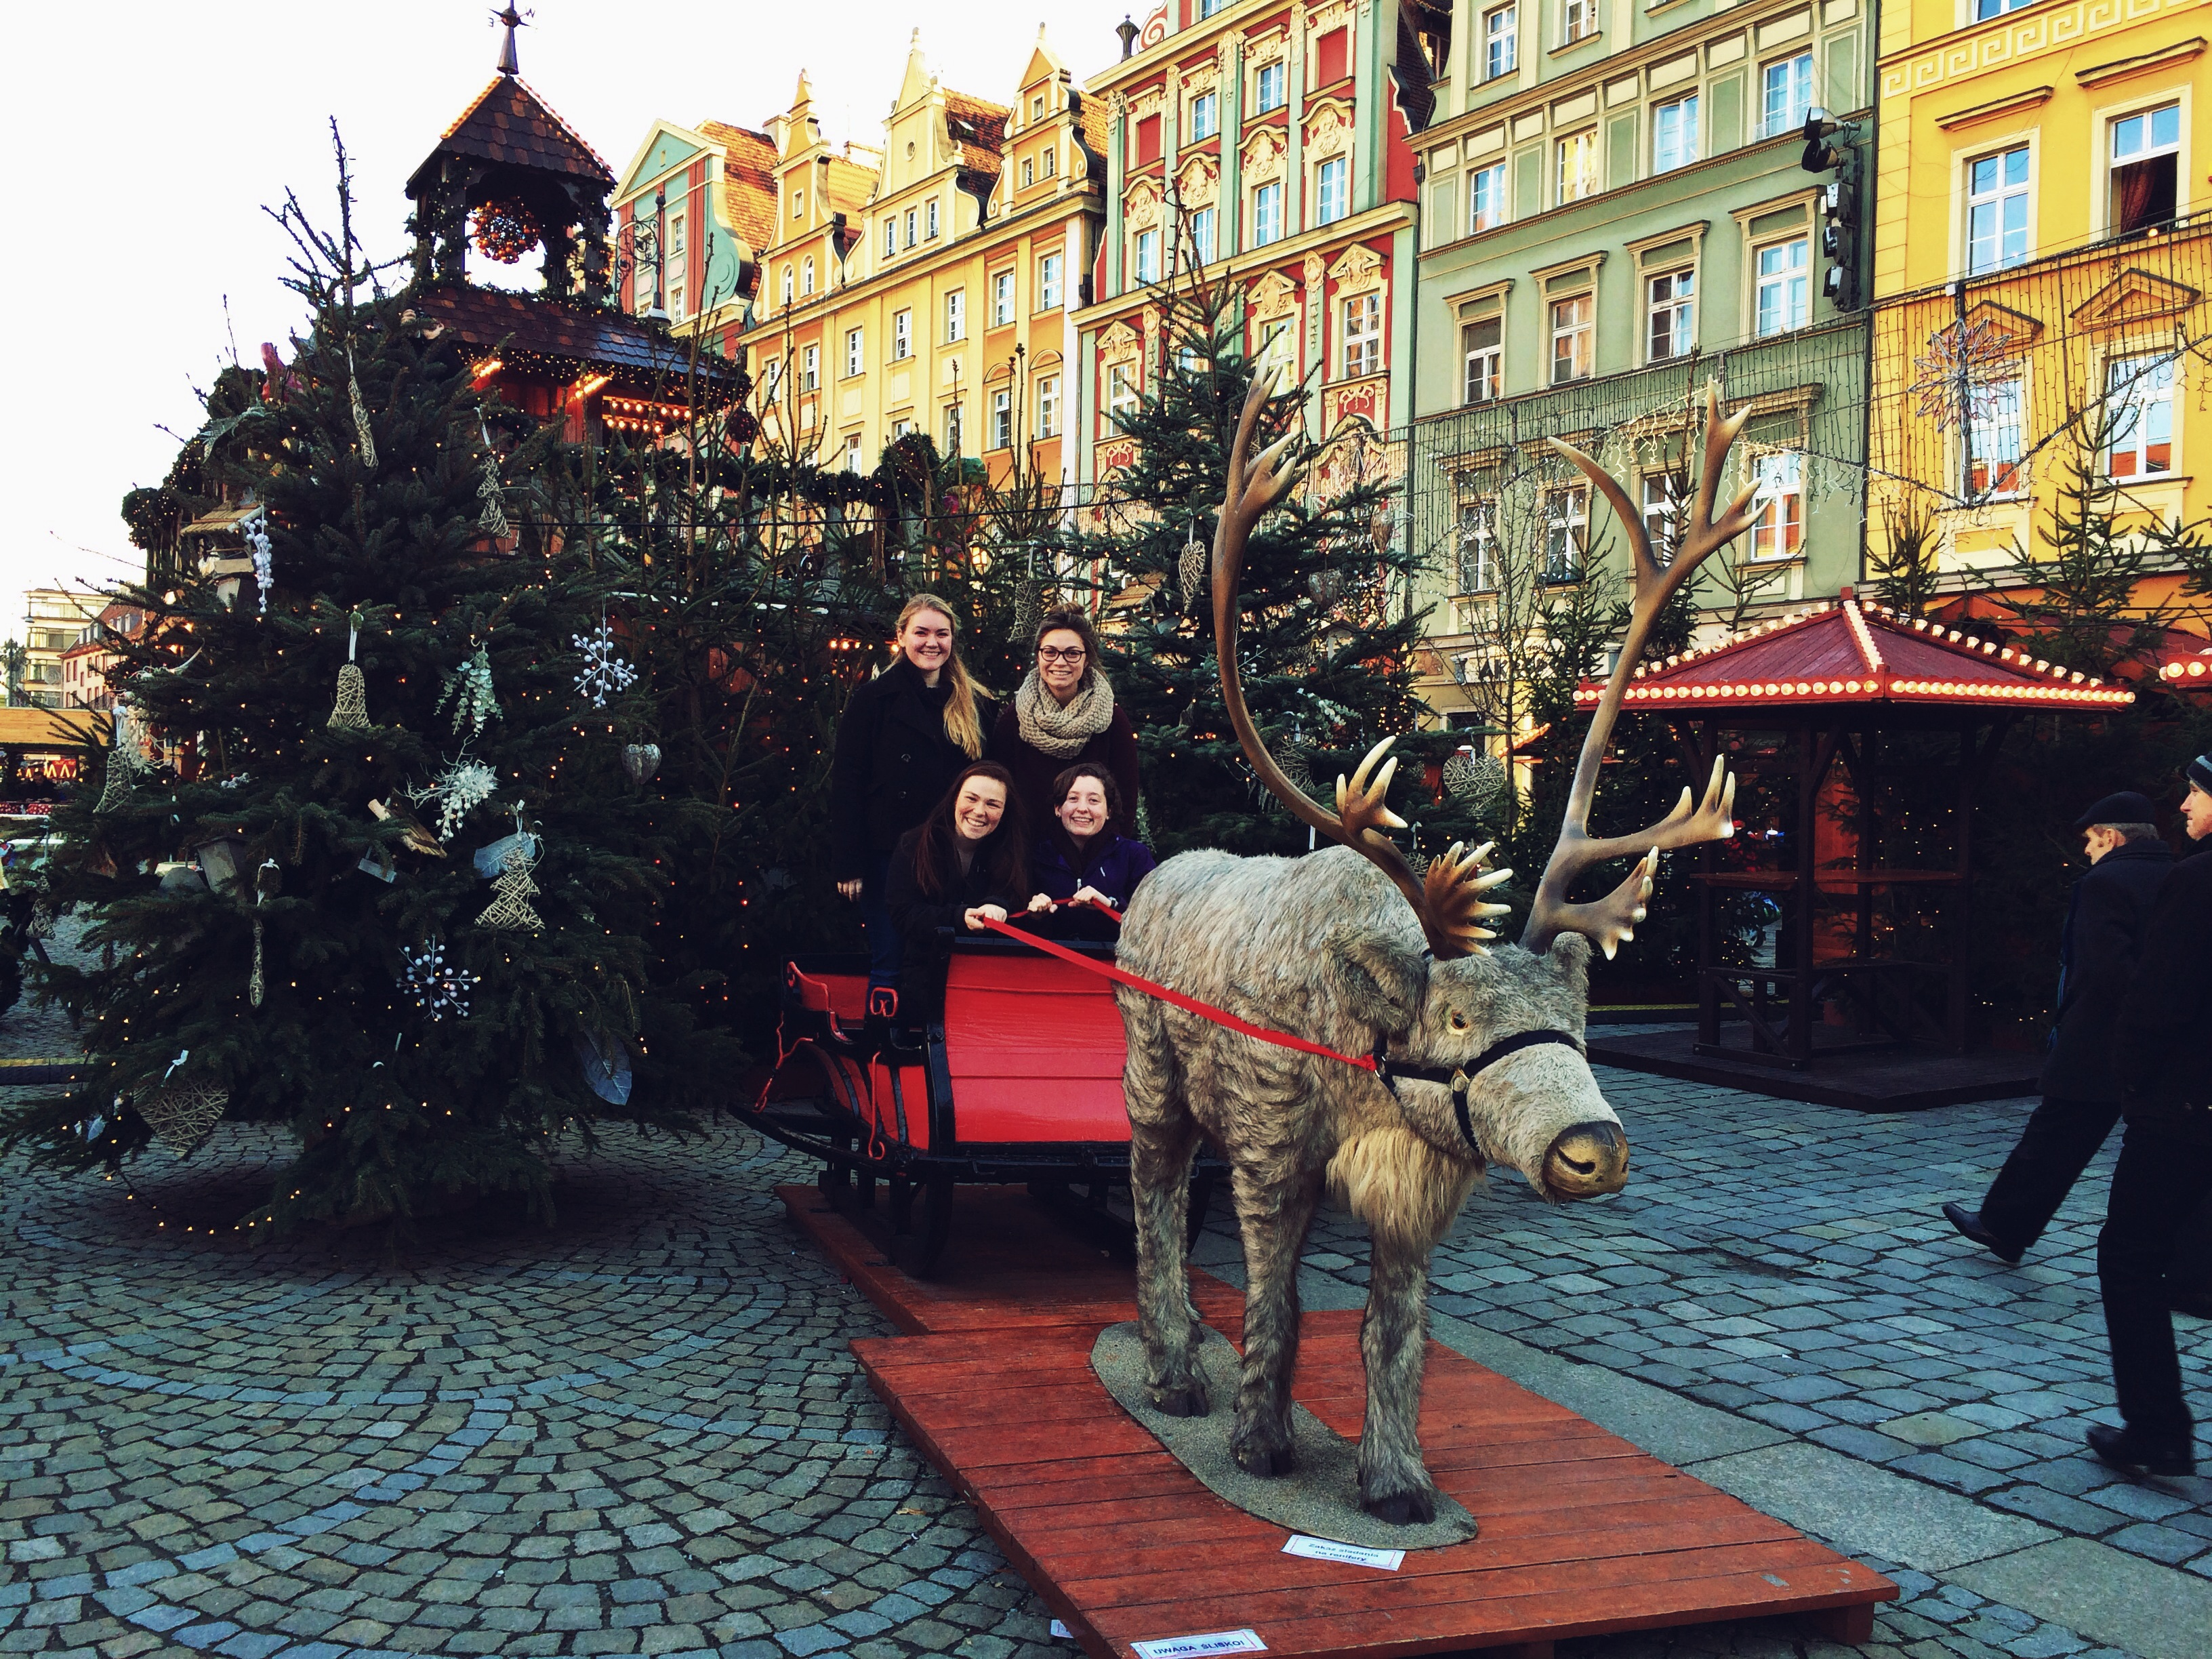 Students explore Wroclaw during the winter holidays